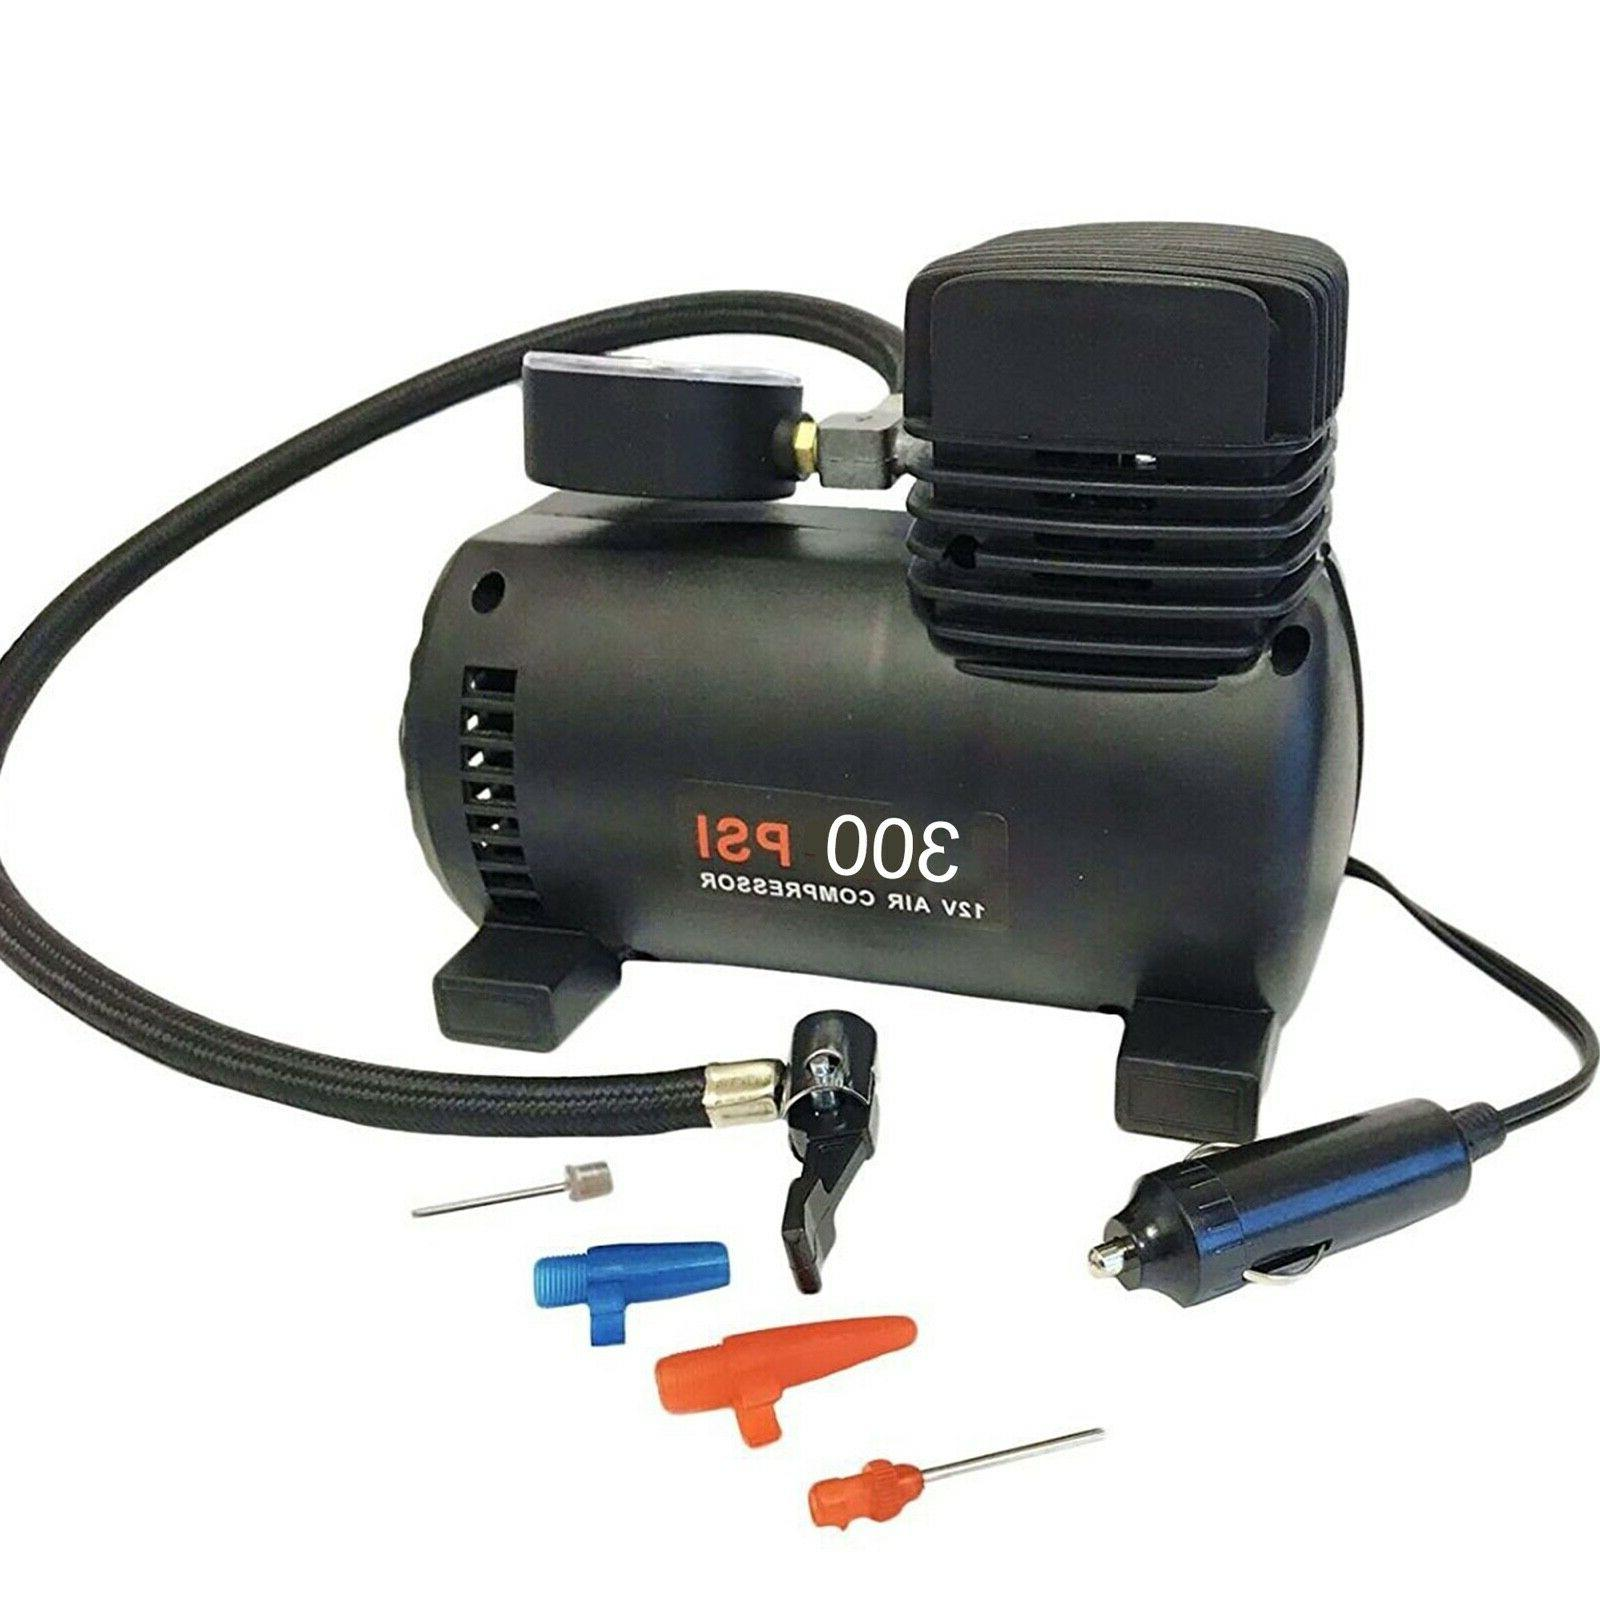 car air compressor heavy duty portable tire